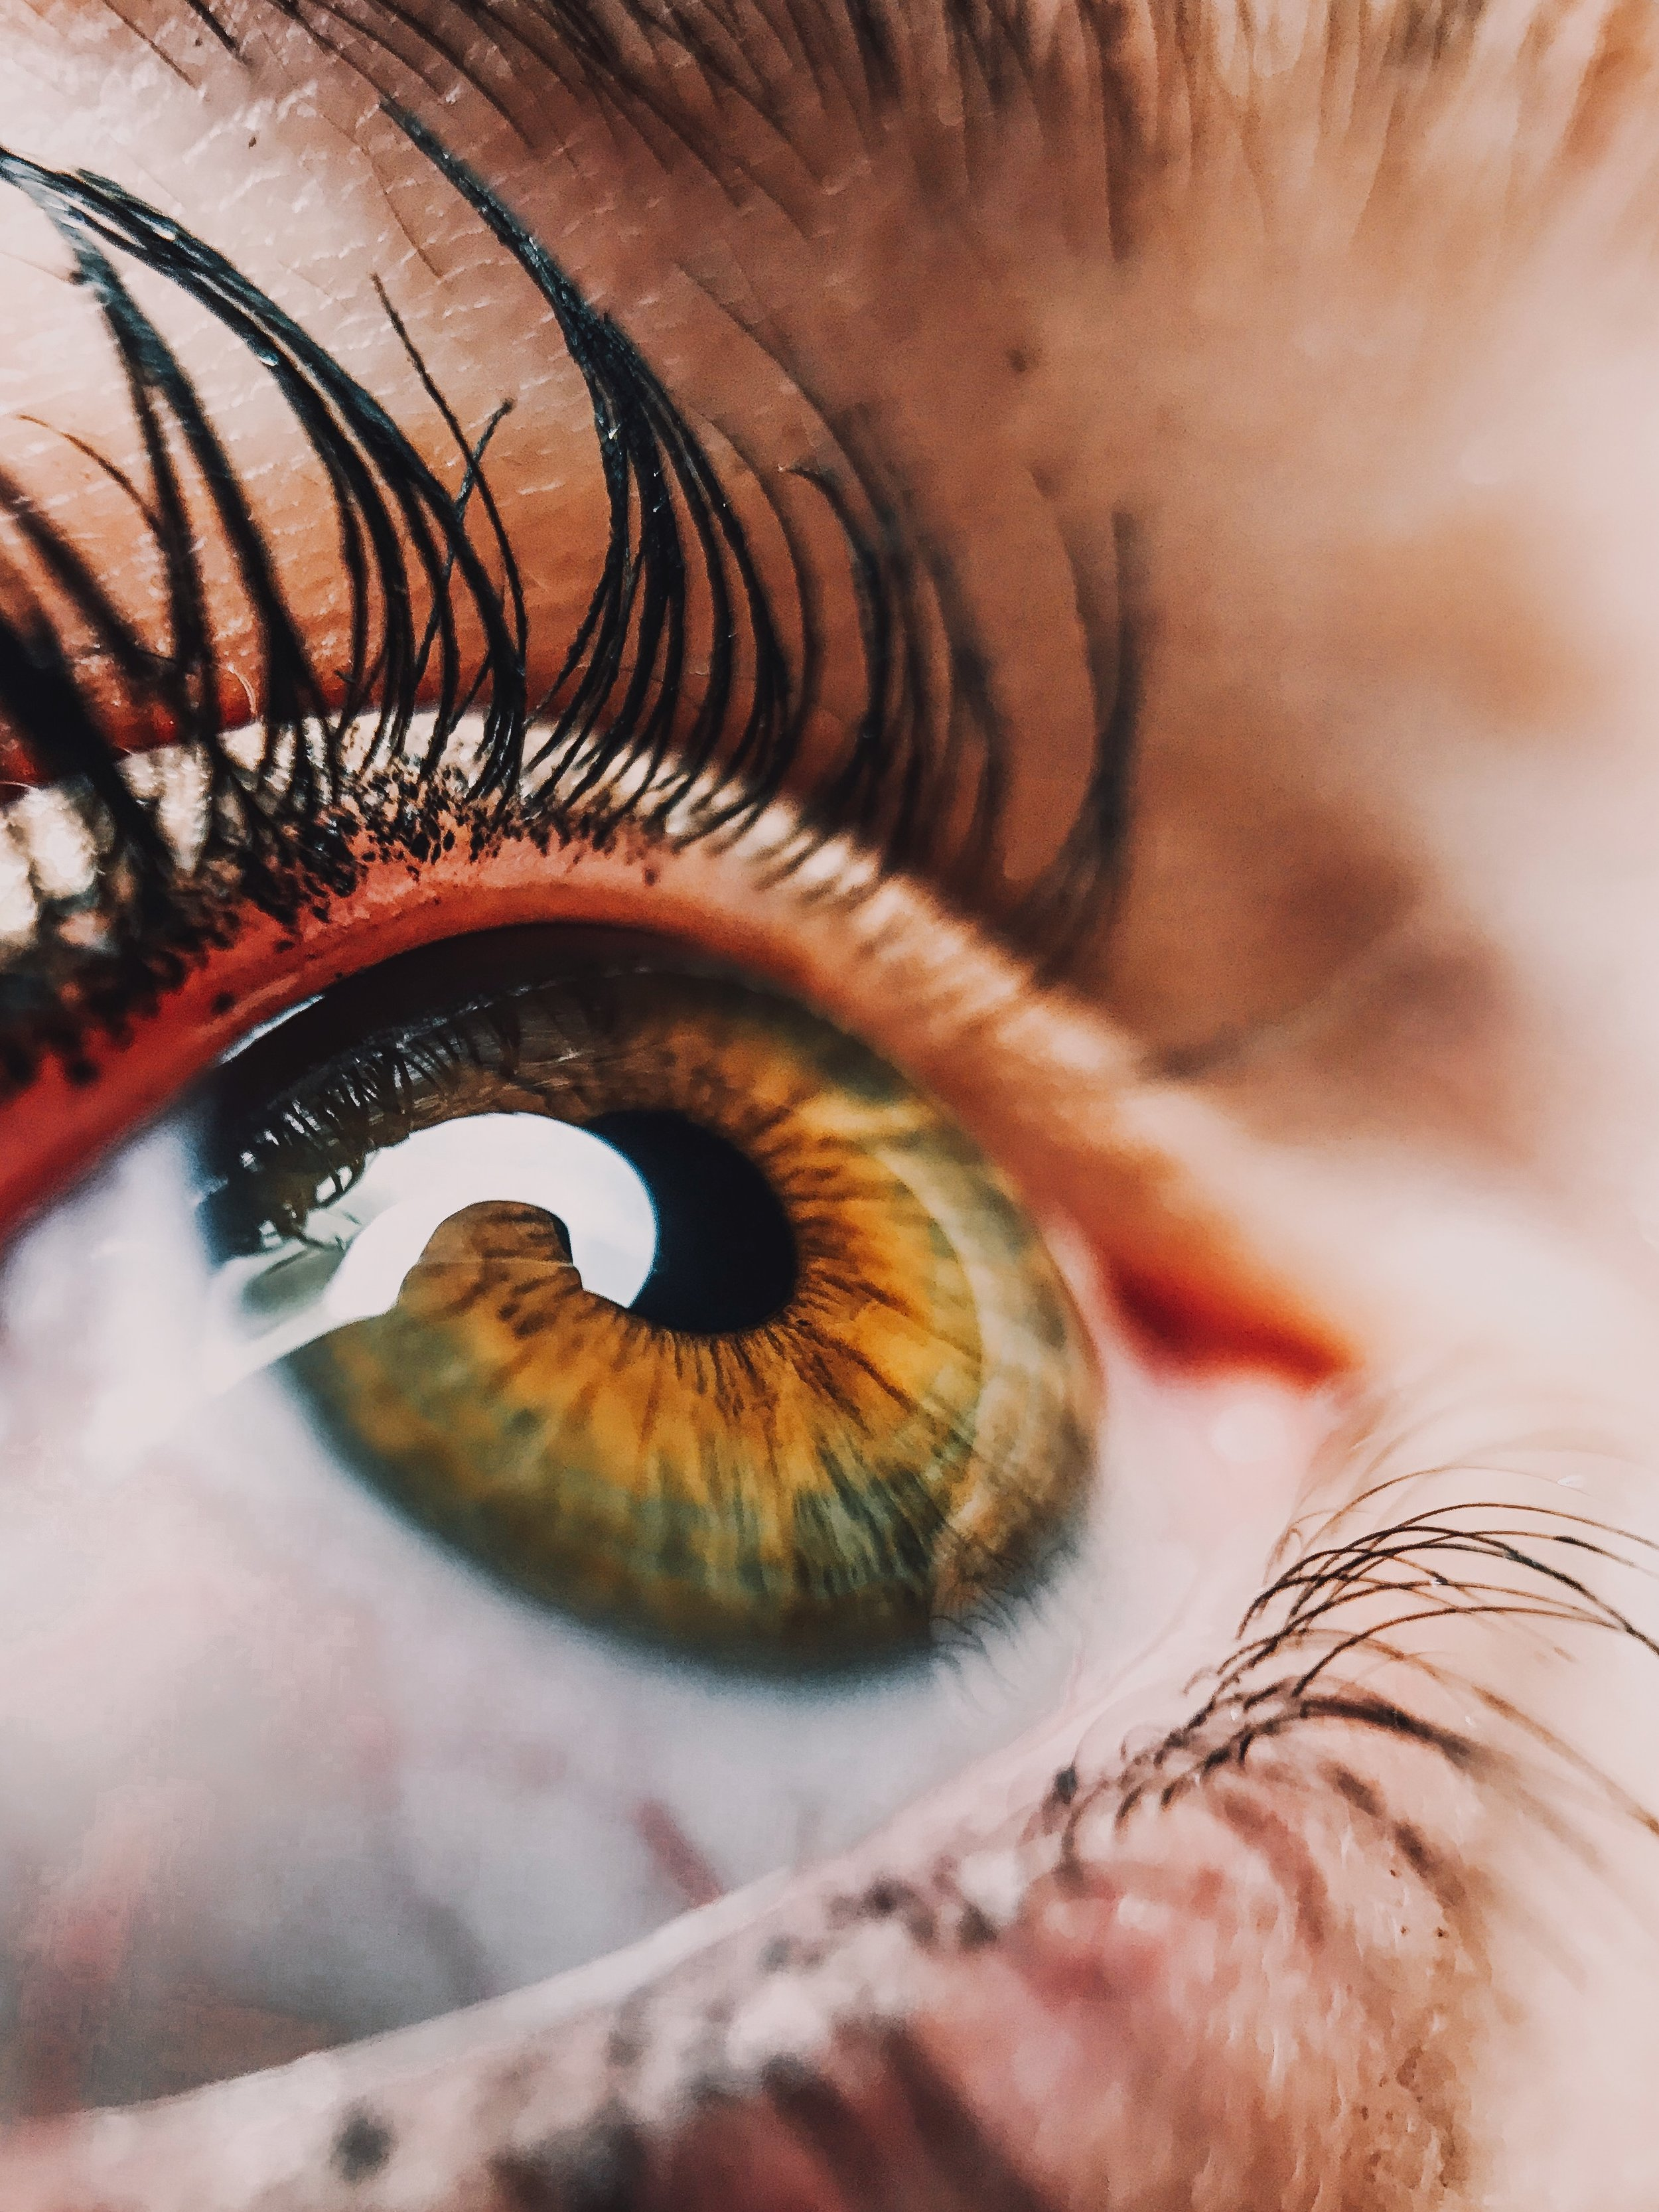 Astigmatism is confusing. Your optometrist can check your prescription at your annual eye exam!